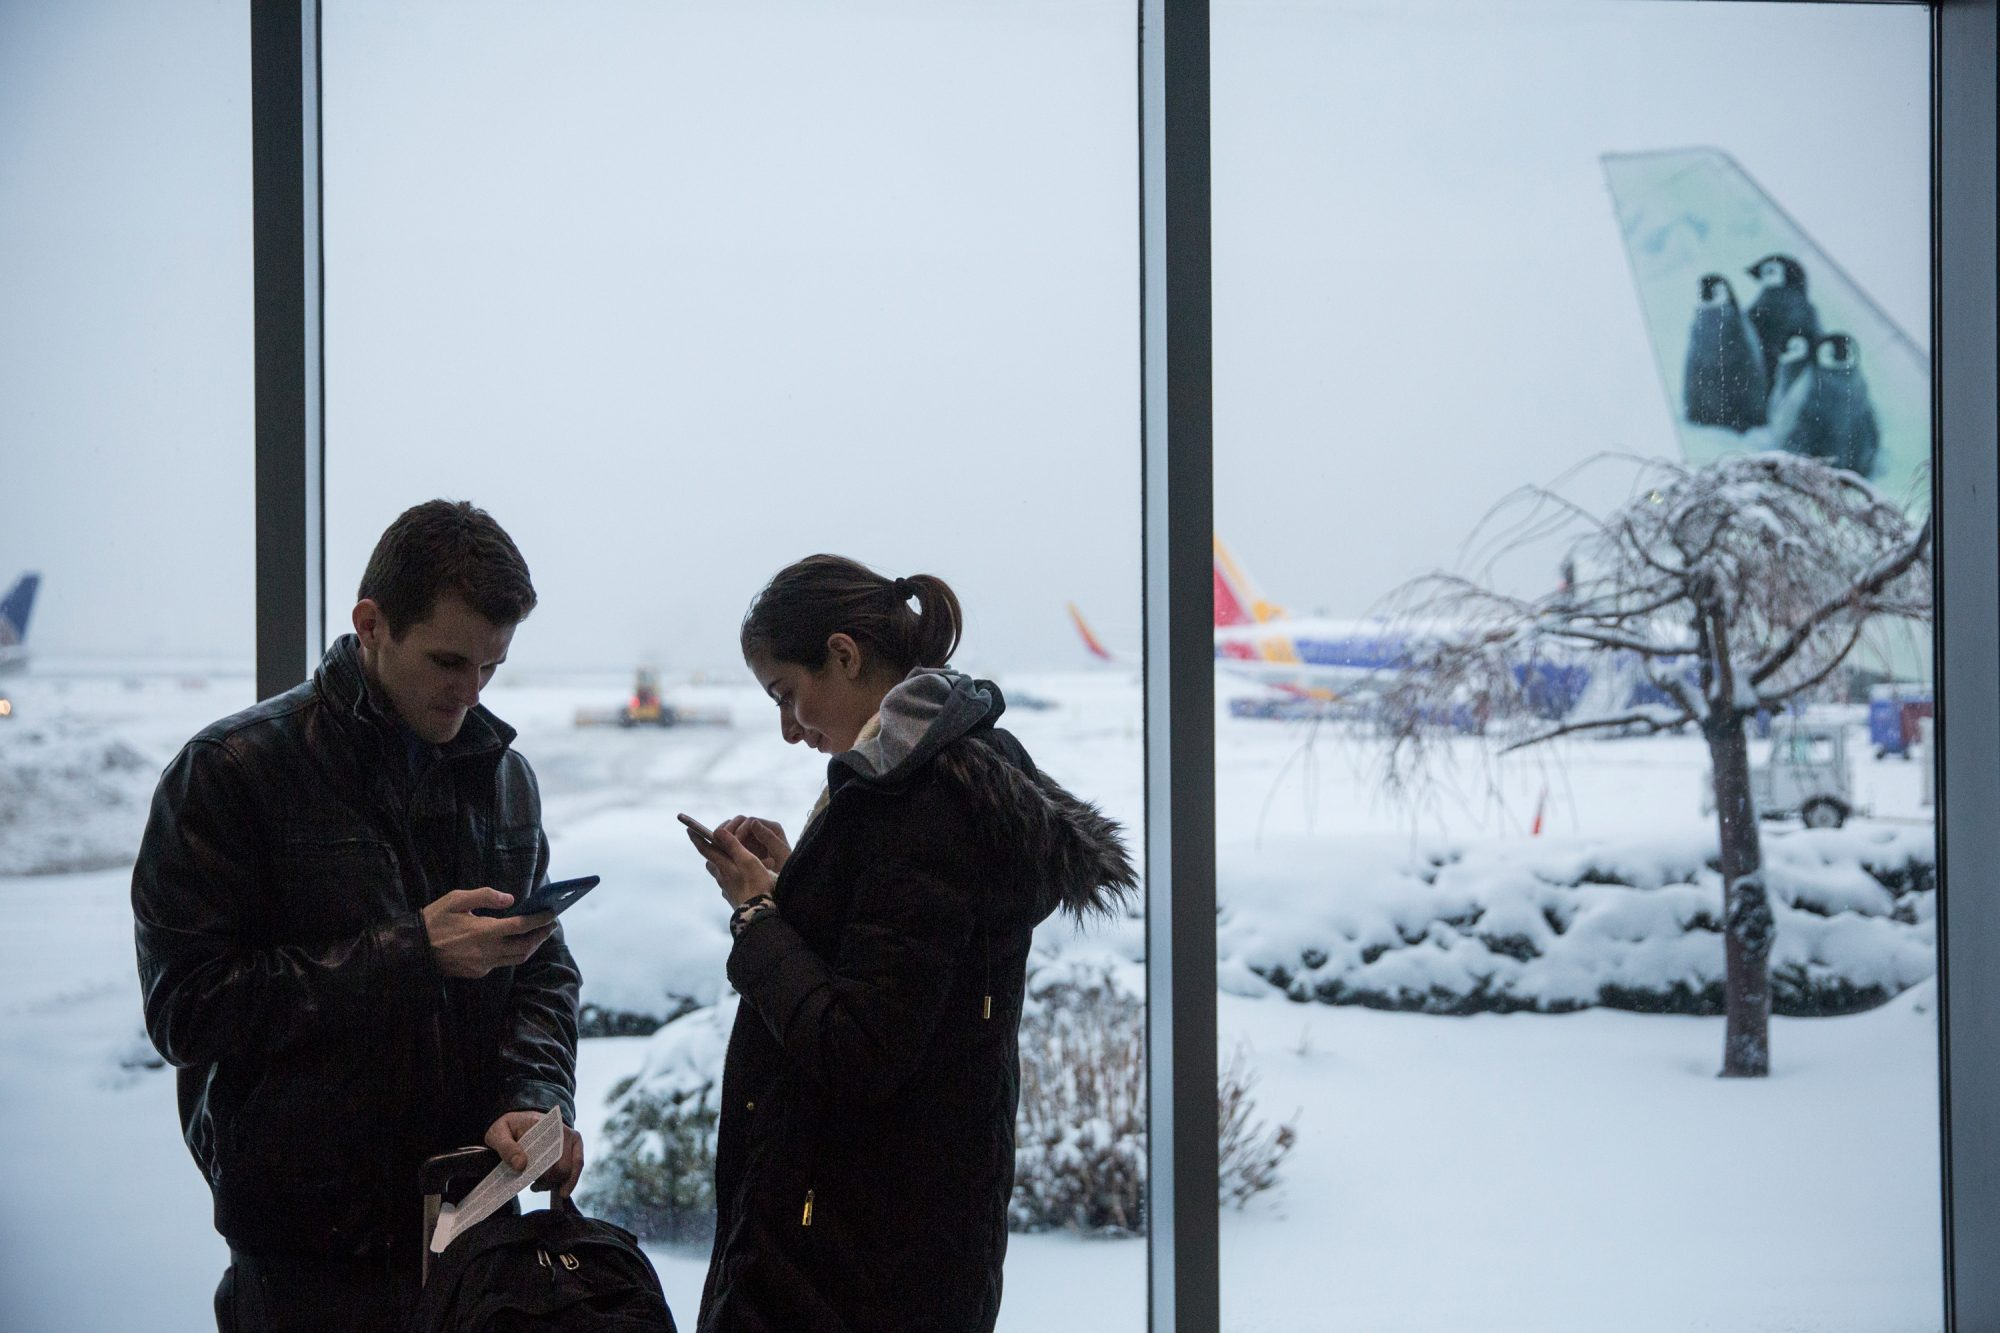 Man and Woman at Snowy Airport Gate